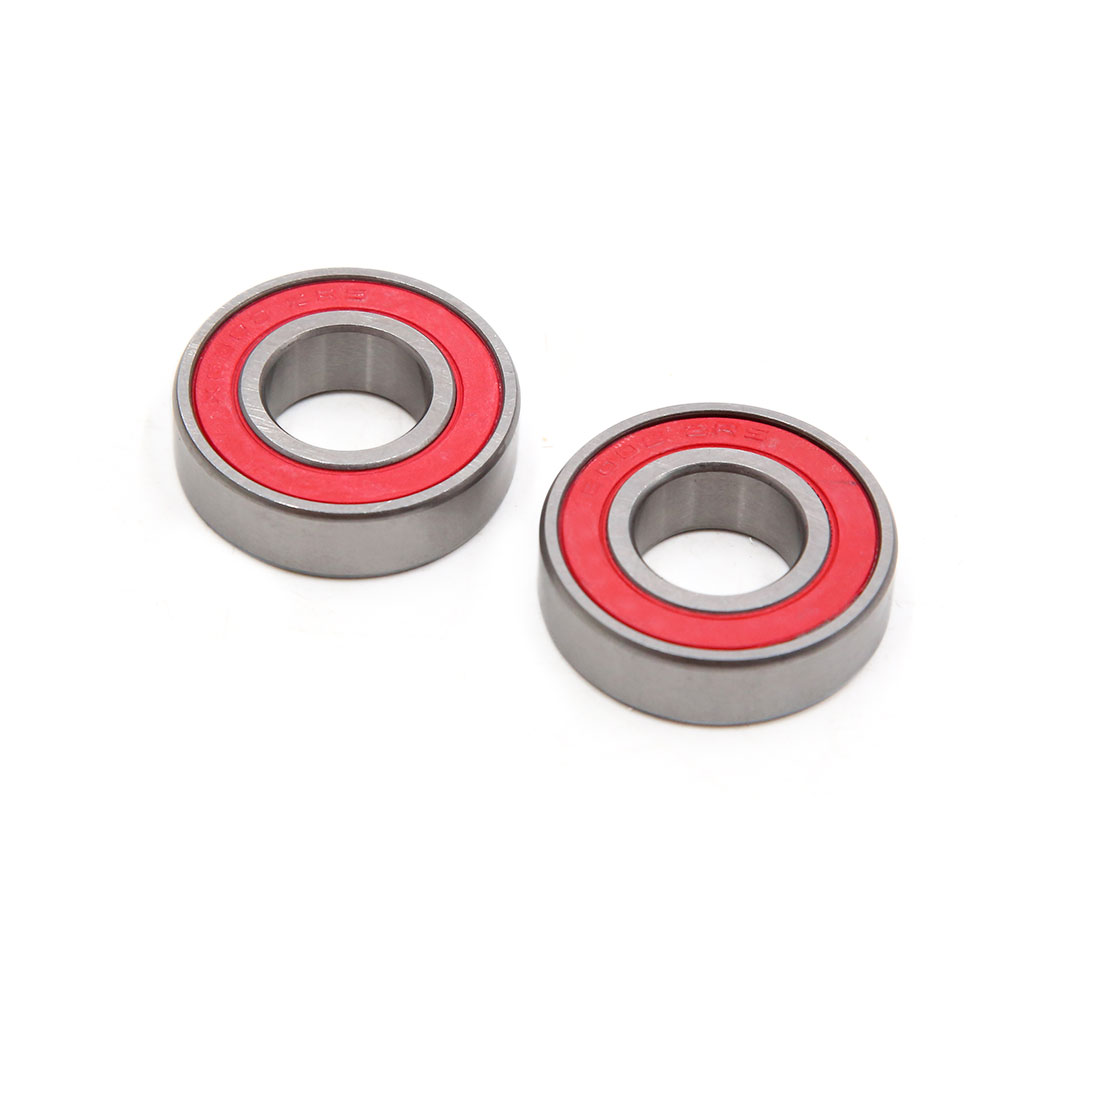 2pcs 6002-2RS Scooter Motorcycle Sealed Deep Groove Ball Bearing 32 x 15 x 9mm